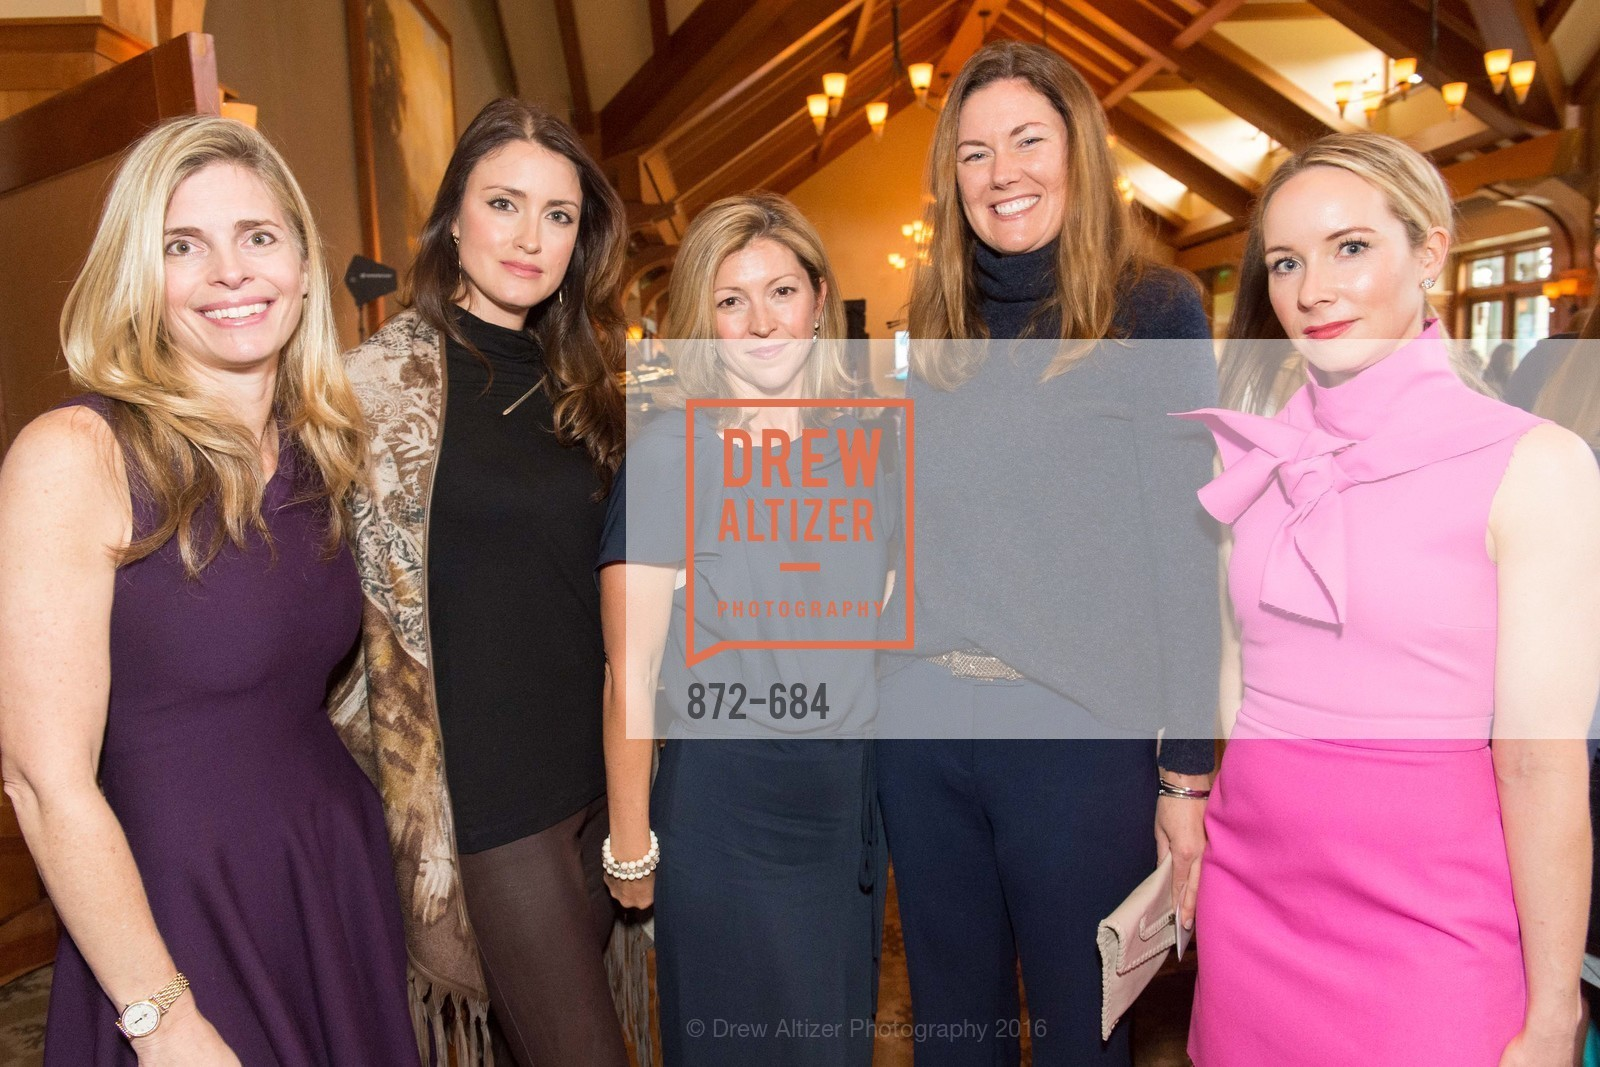 Suzanne Crandall, Agatha Luczo, Abigail Durban, Alison Abbo, Carson Eltoukhy, Under One Umbrella, Sharon Heights Golf and Country Club, January 13th, 2016,Drew Altizer, Drew Altizer Photography, full-service agency, private events, San Francisco photographer, photographer california